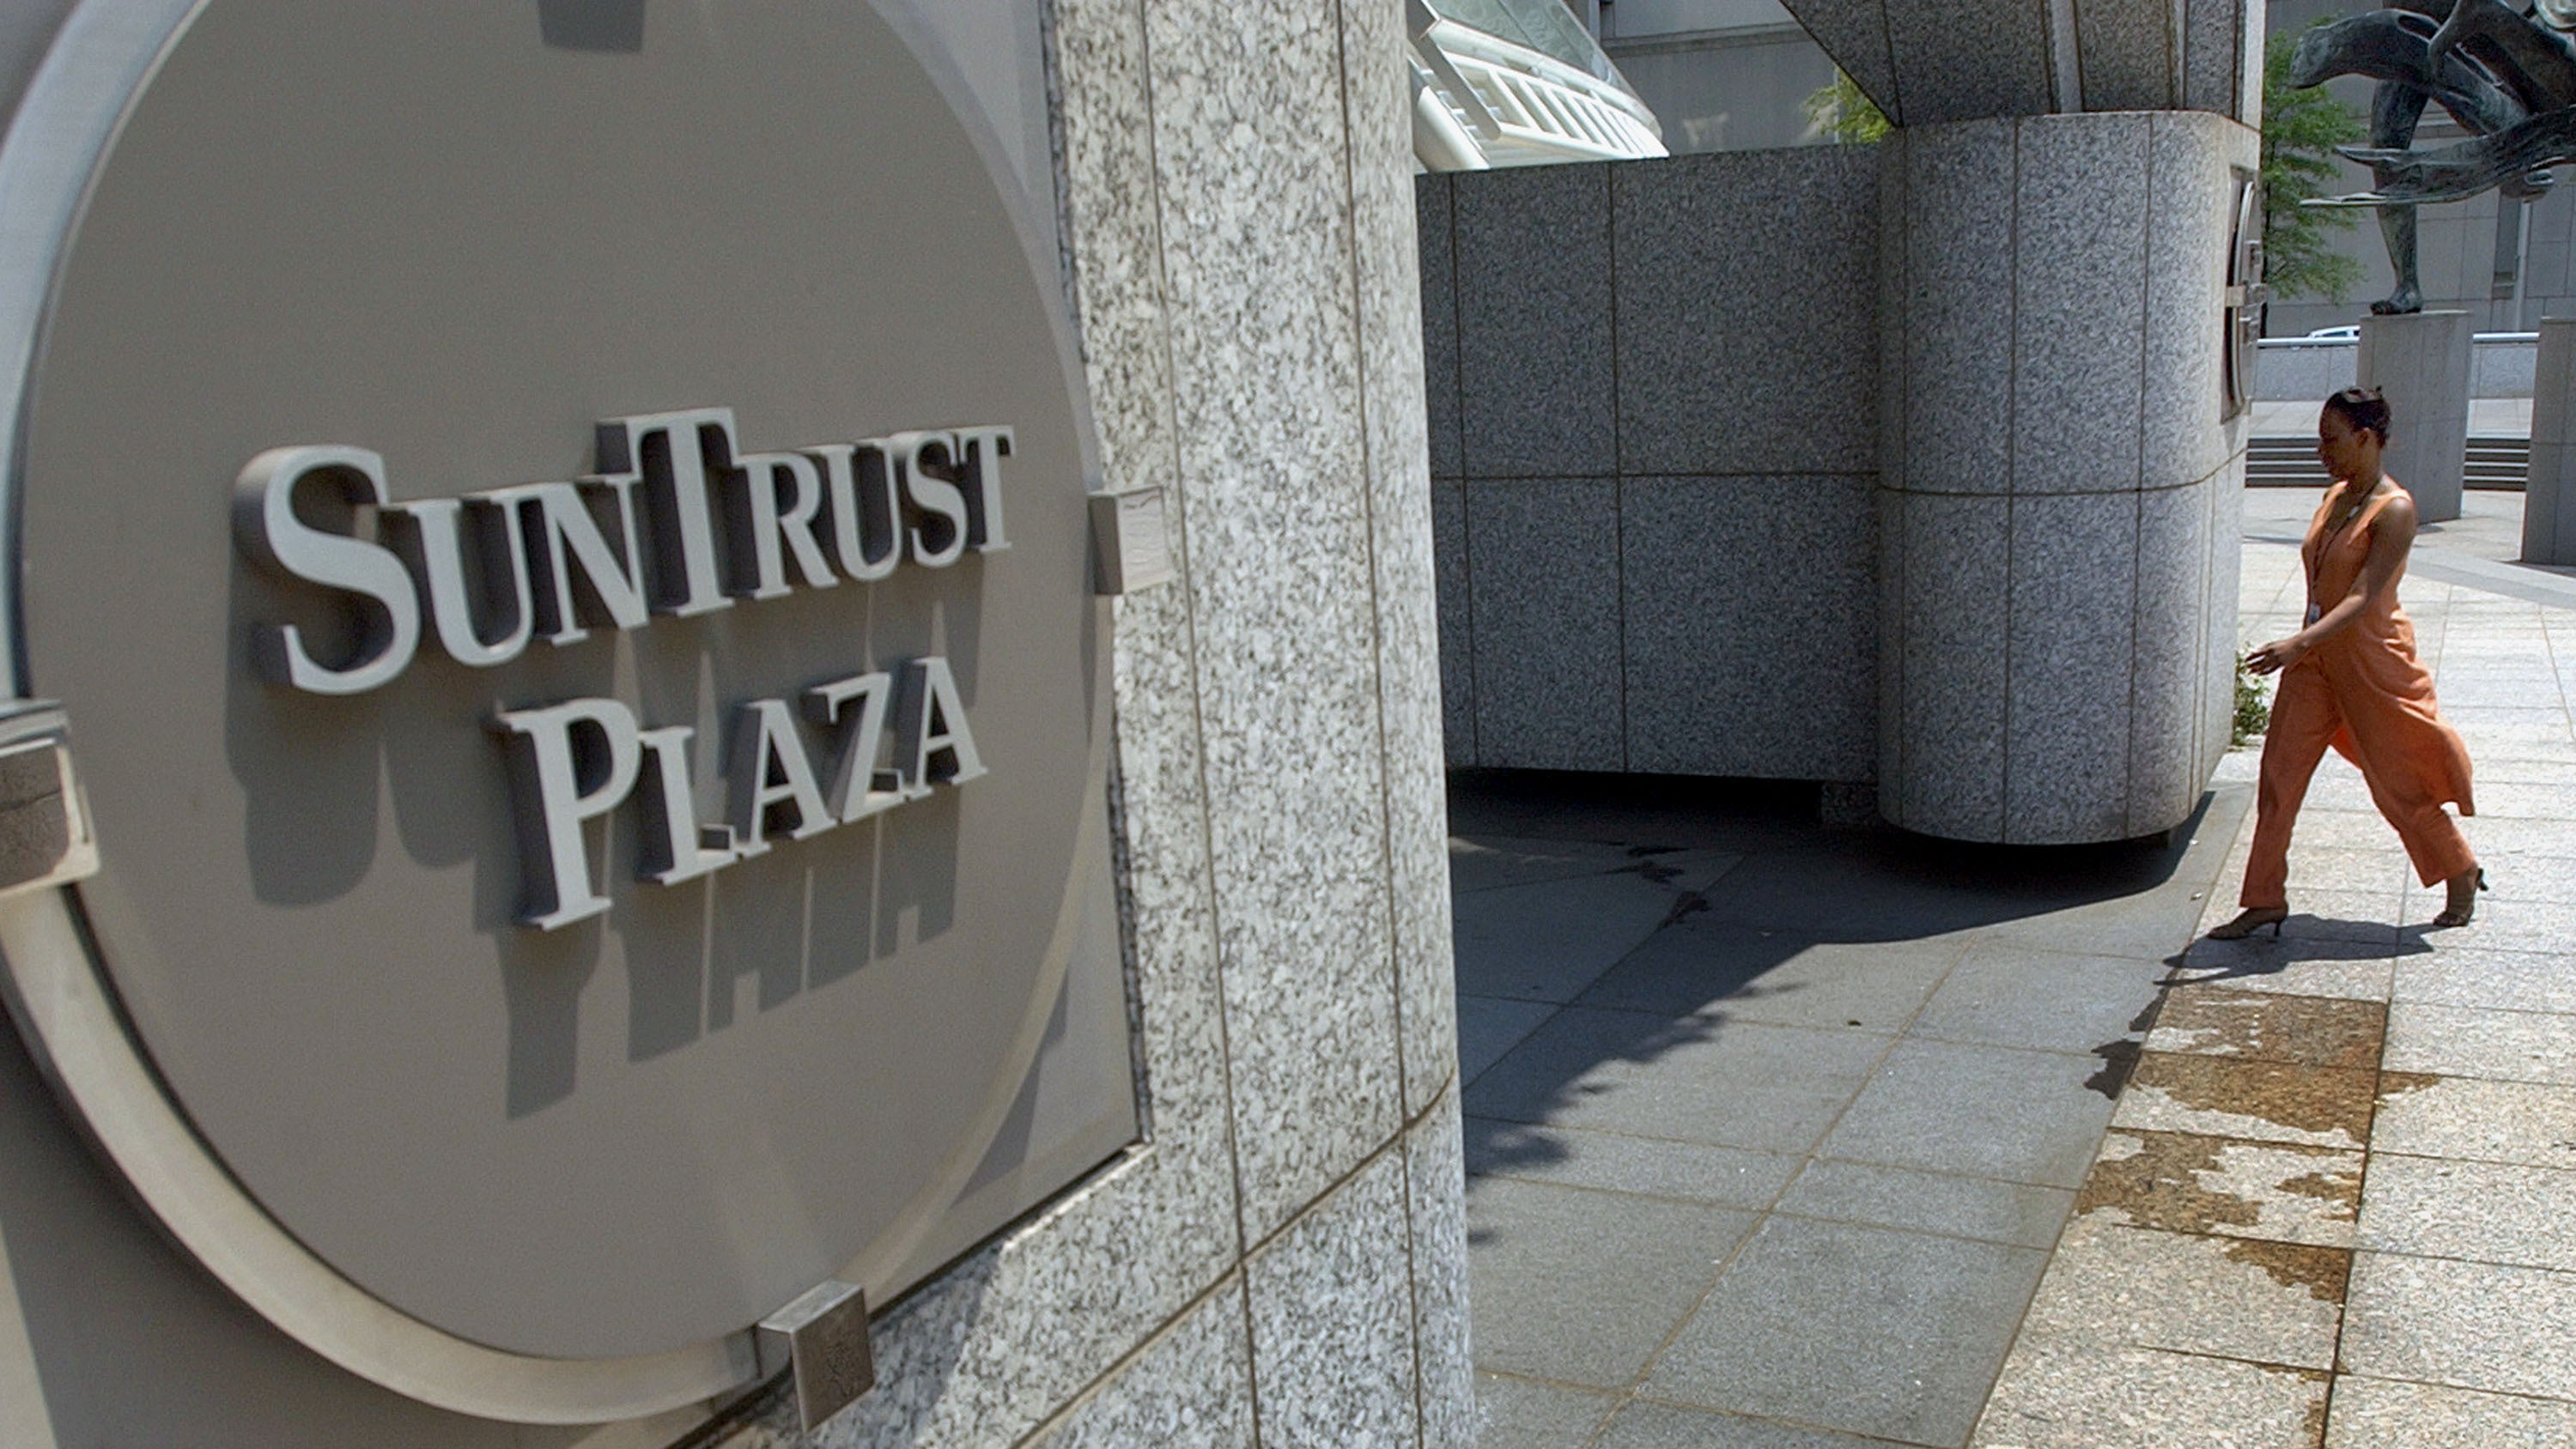 SunTrust Bank Says Employee May Have Stolen 1.5 Million Customers' Info And Given It To Criminals